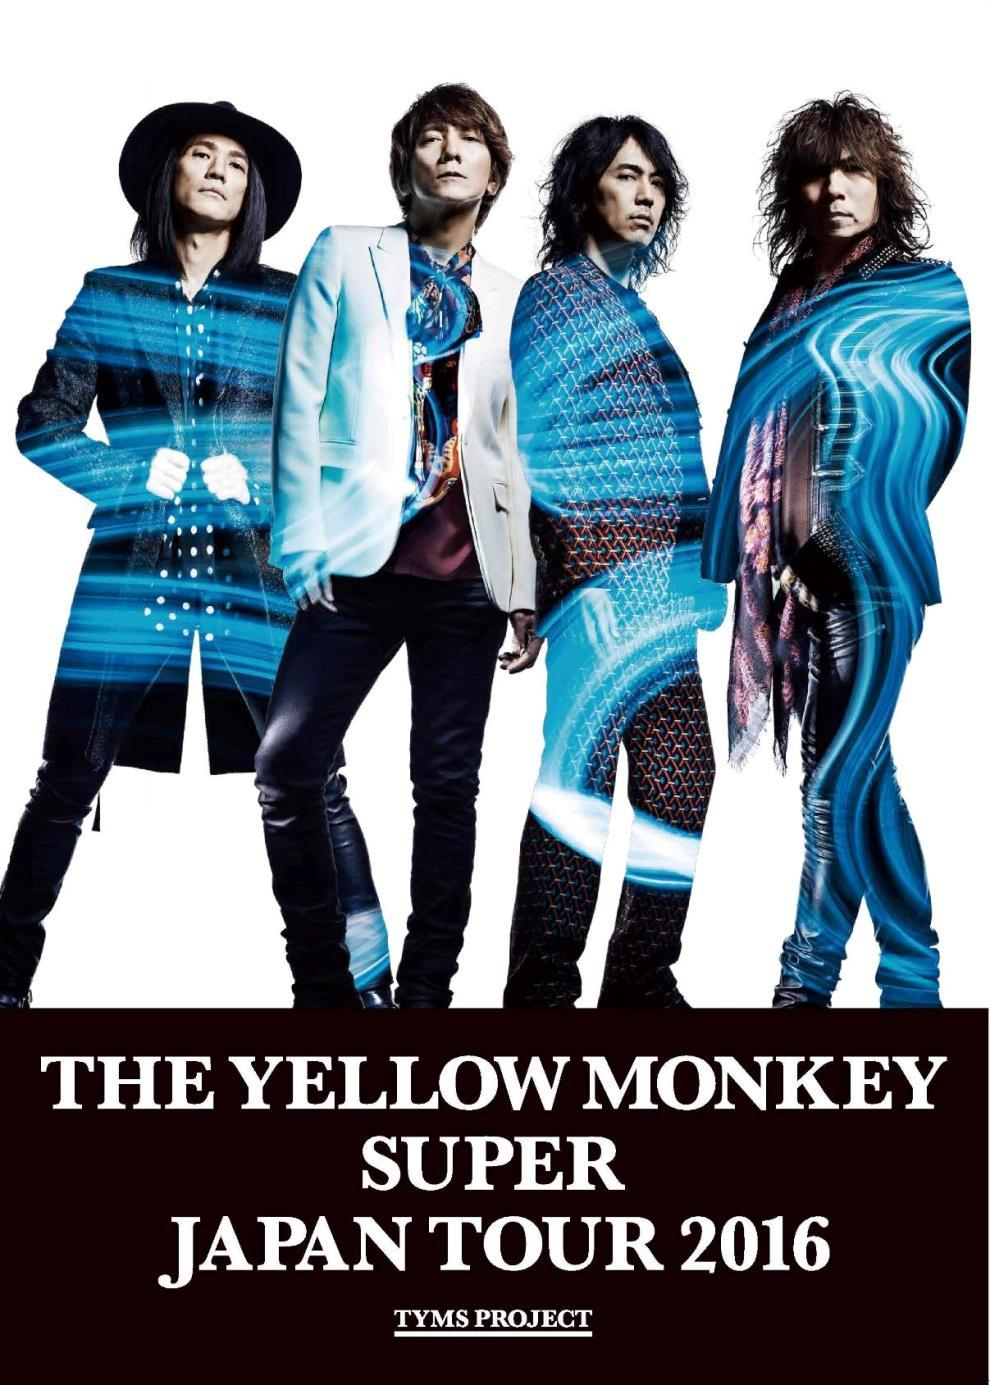 THE YELLOW MONKEY 特典ポスター